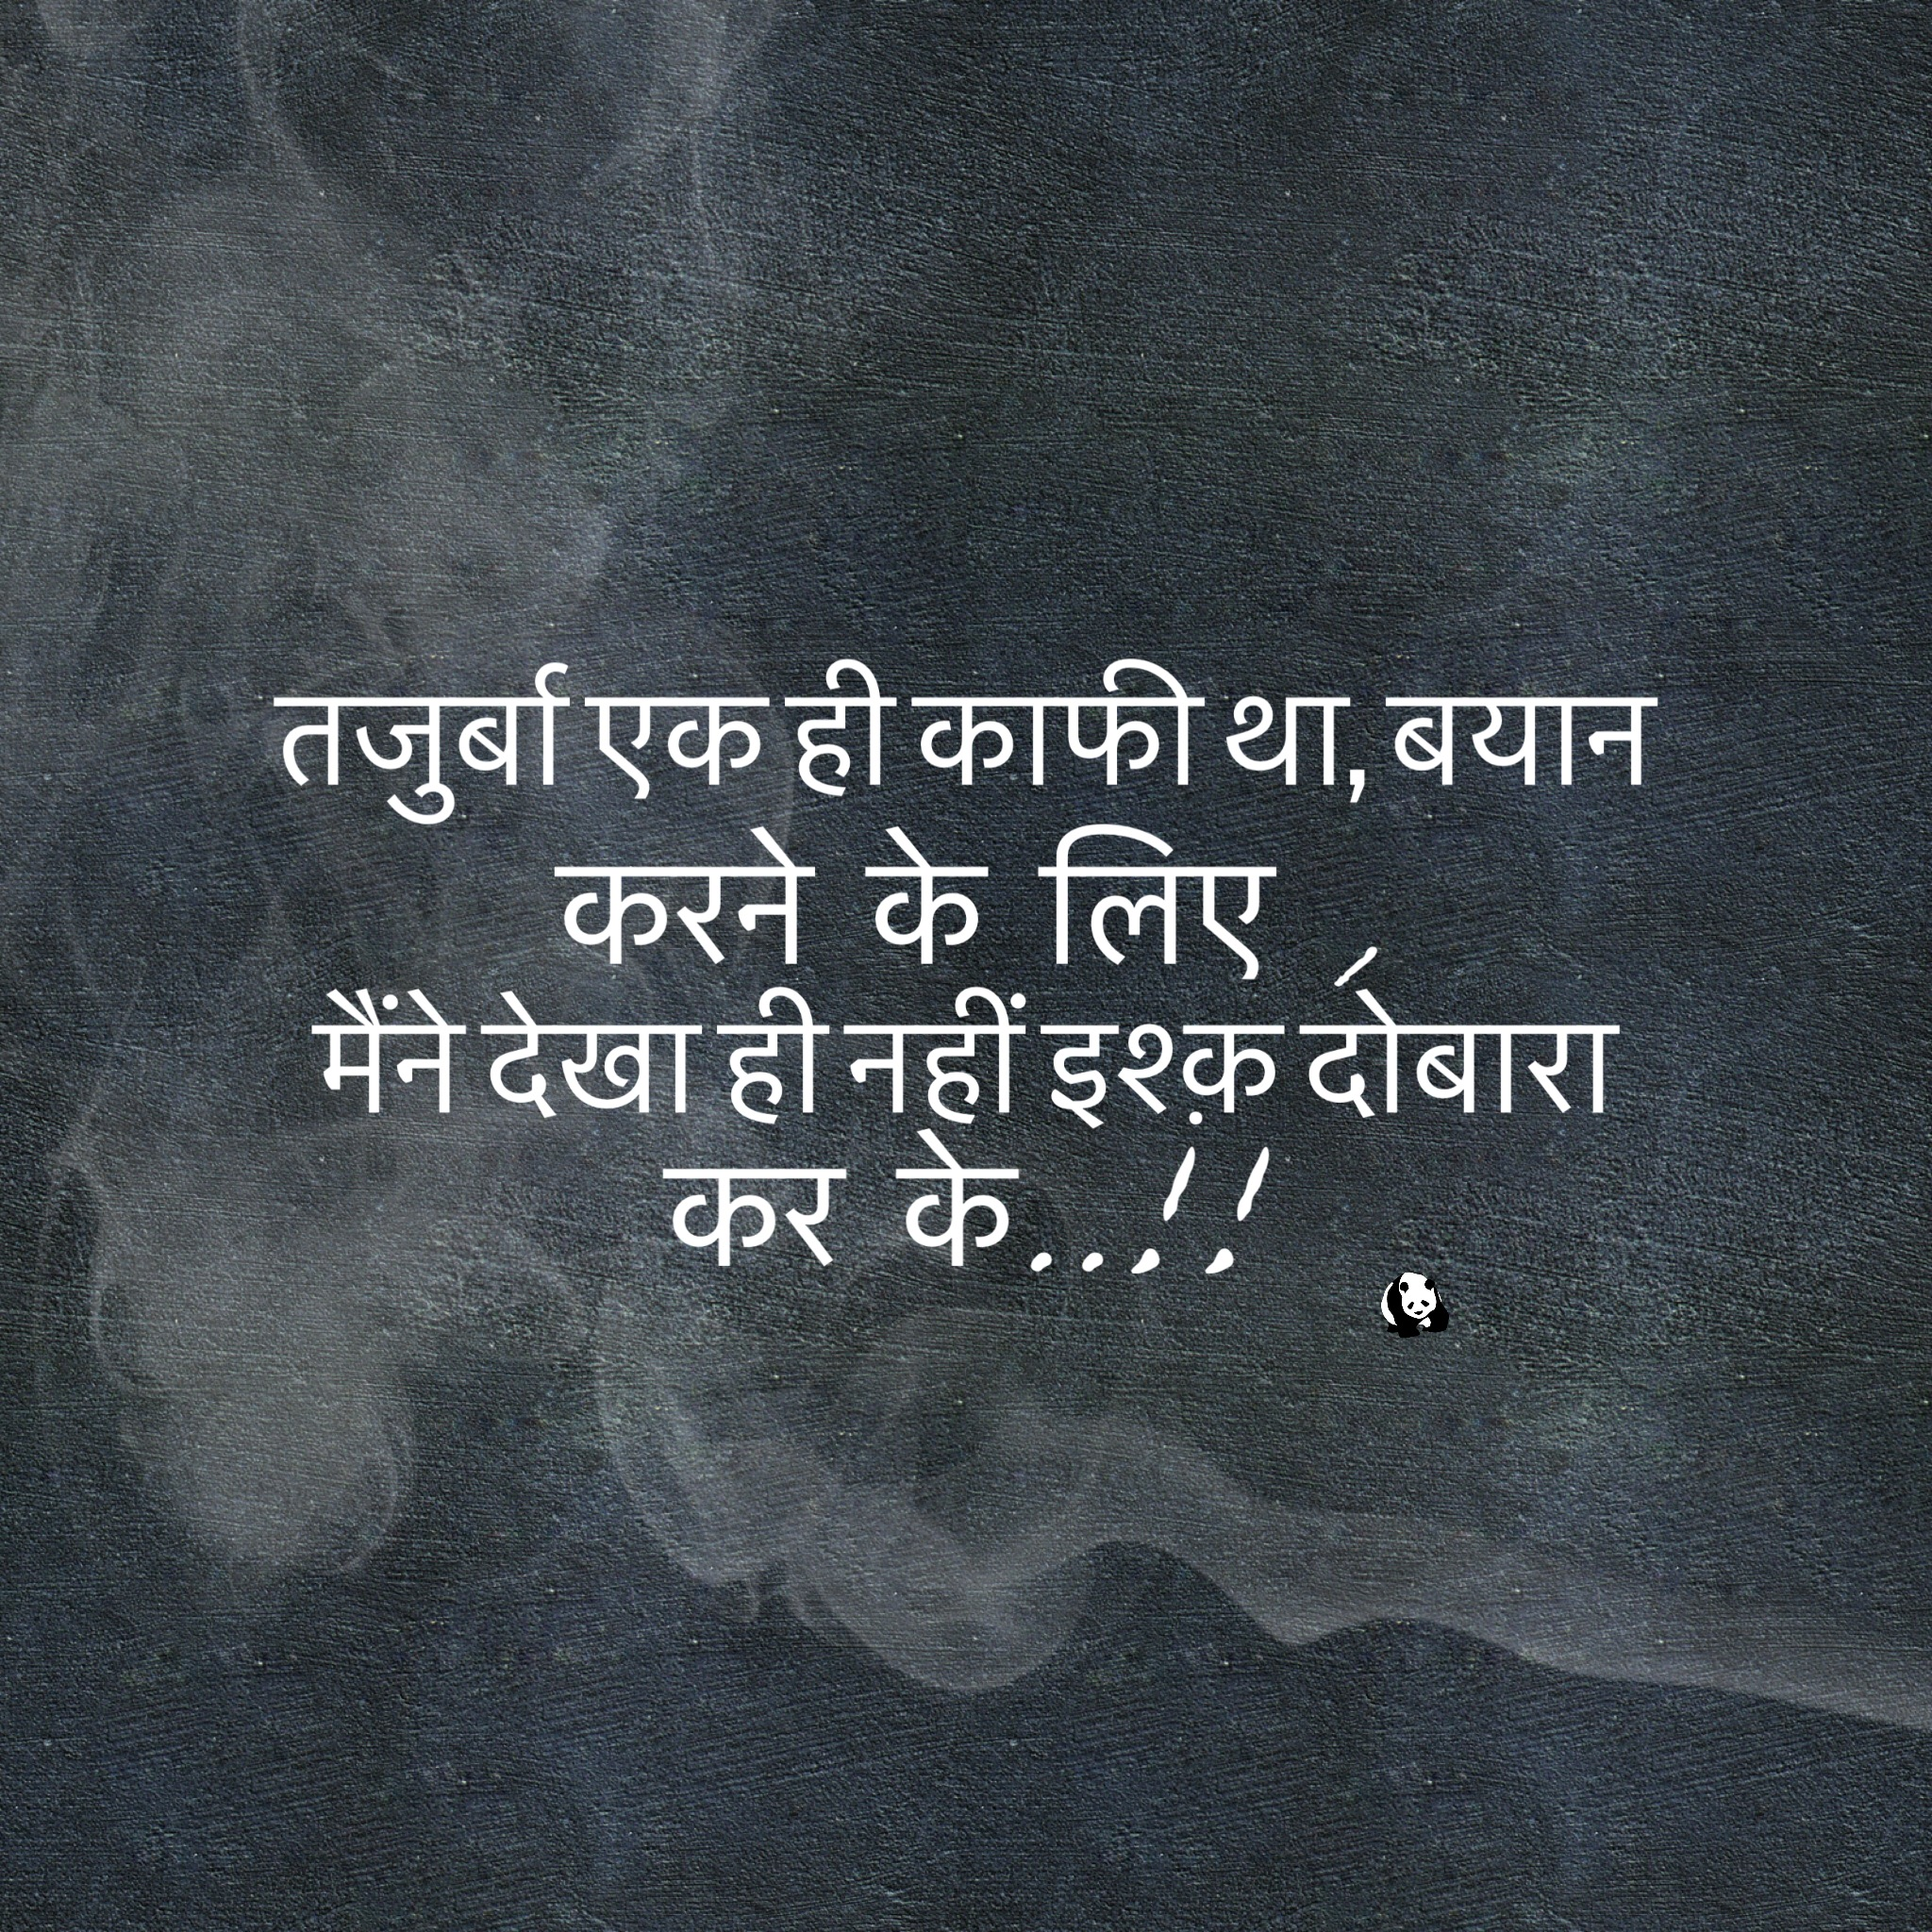 deaeaecdefaf-indian-quotes-dream-quotes-wallpaper-wp5801073